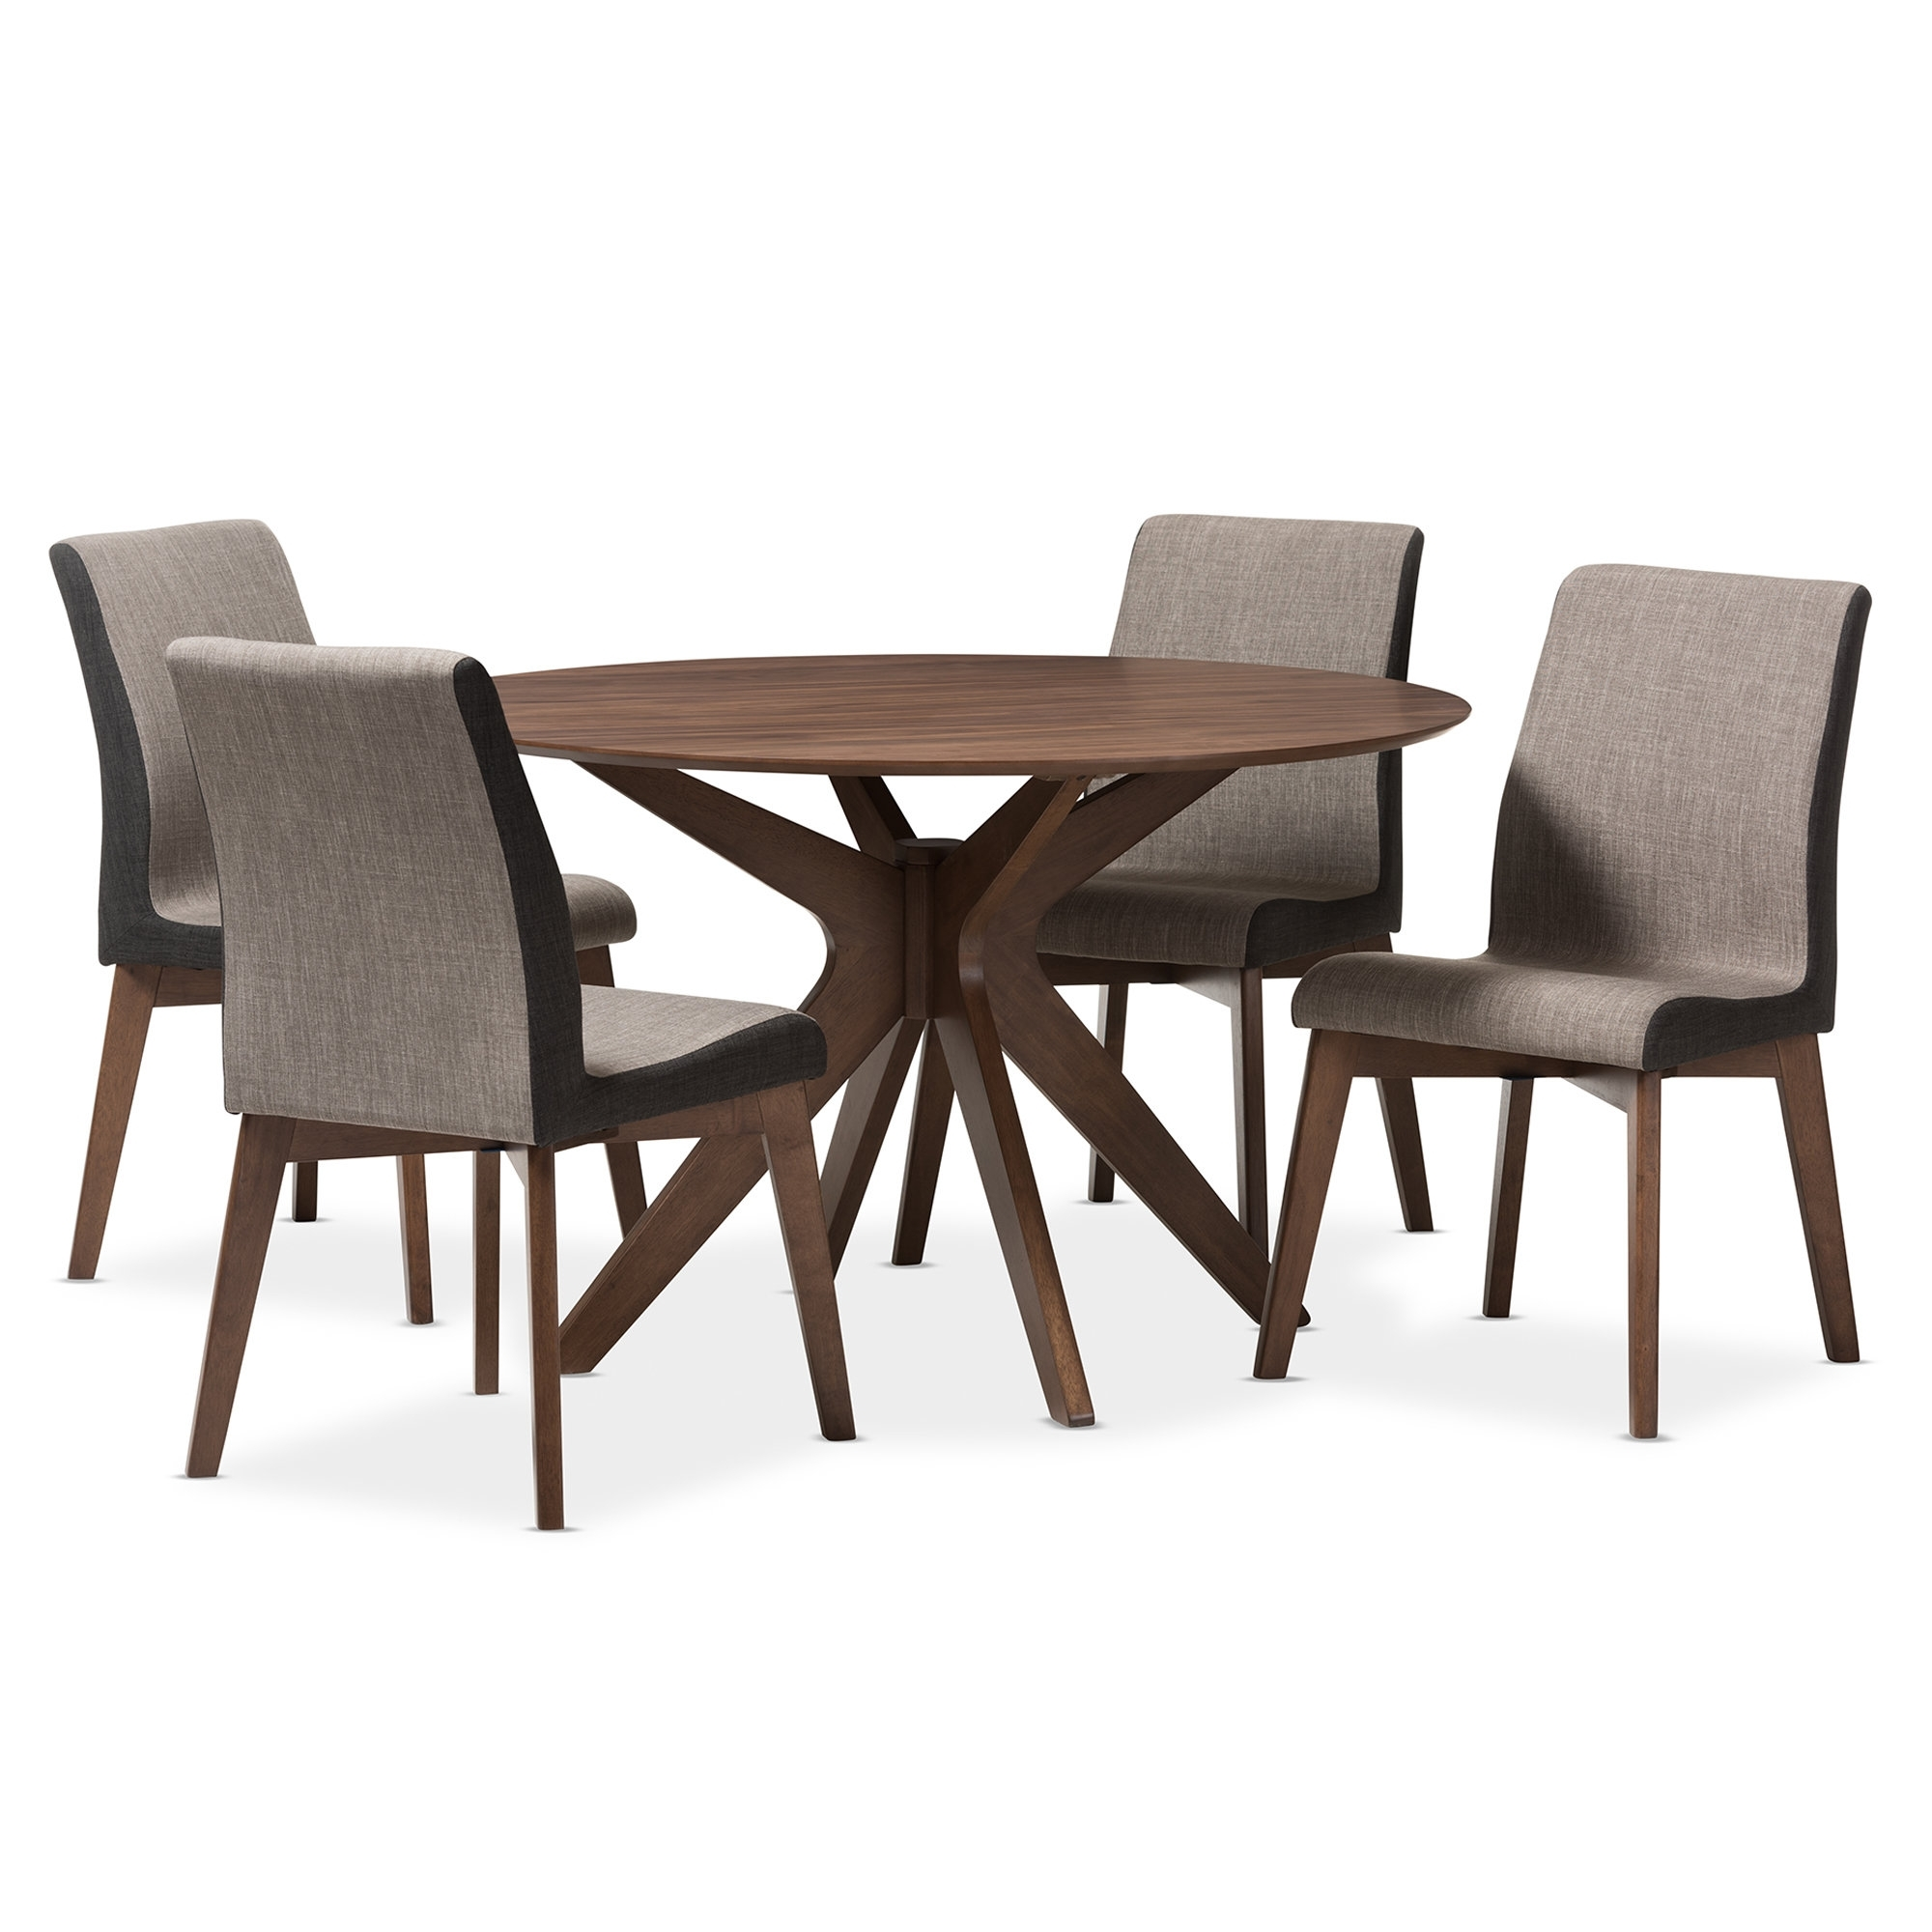 Wholesale Interiors Kimberly Mid Century Modern Wood Round 5 Piece With Regard To Most Popular Laurent 5 Piece Round Dining Sets With Wood Chairs (View 13 of 20)